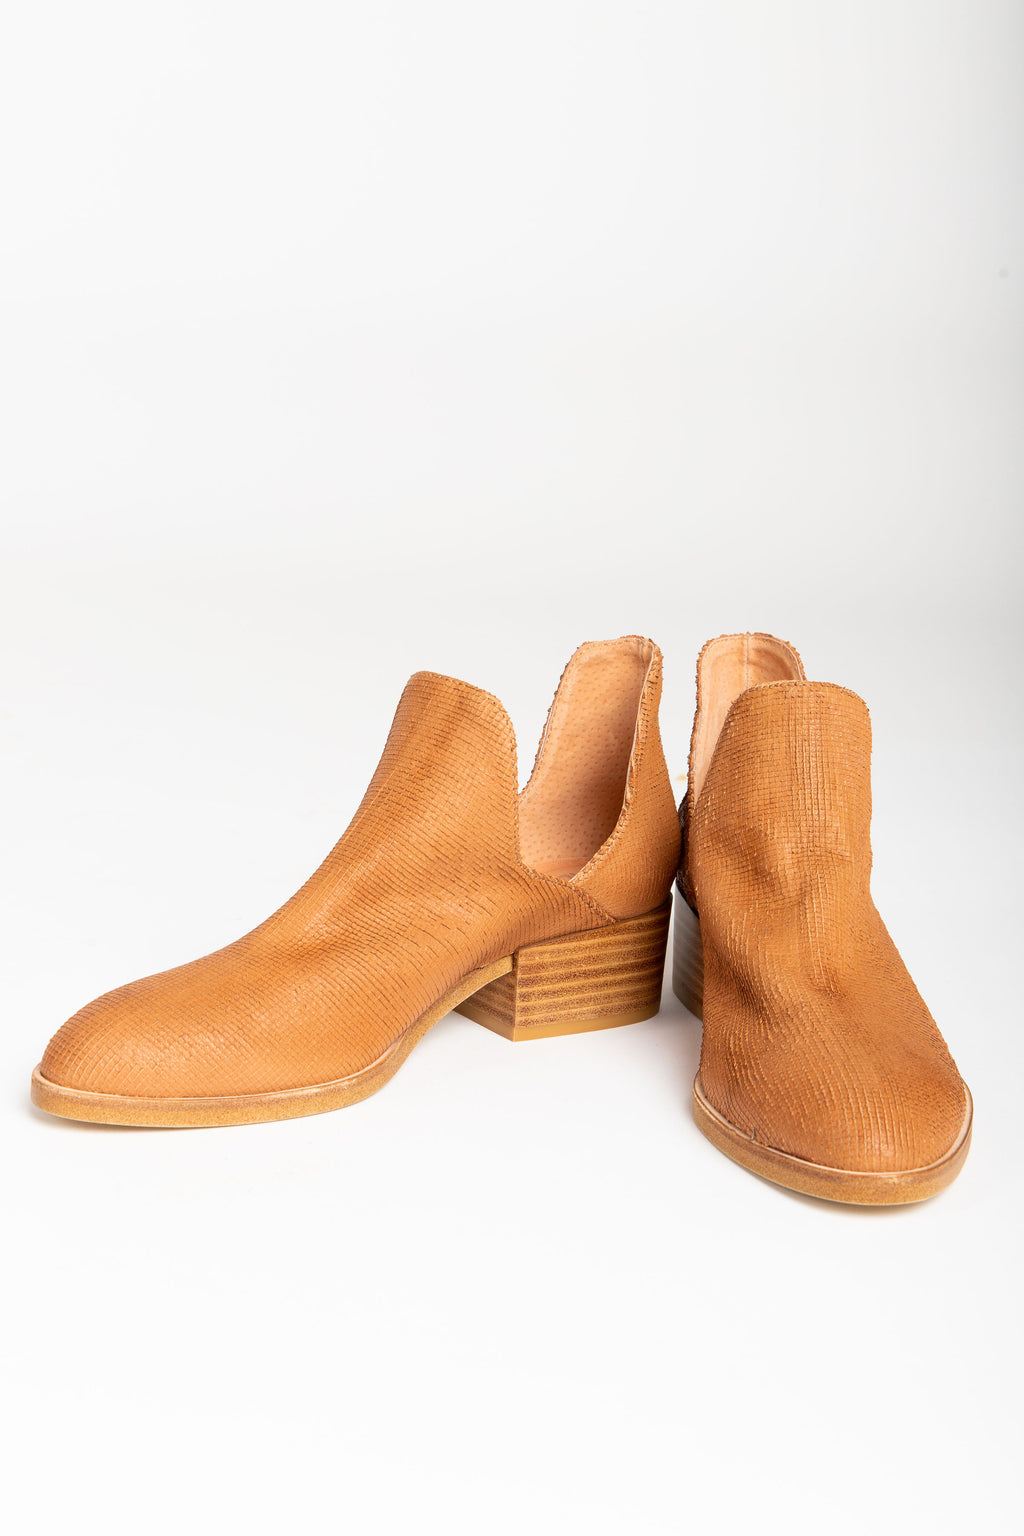 The Cecilia Cutout Bootie in Dark Tan Cut Leather, studio shoot; front view